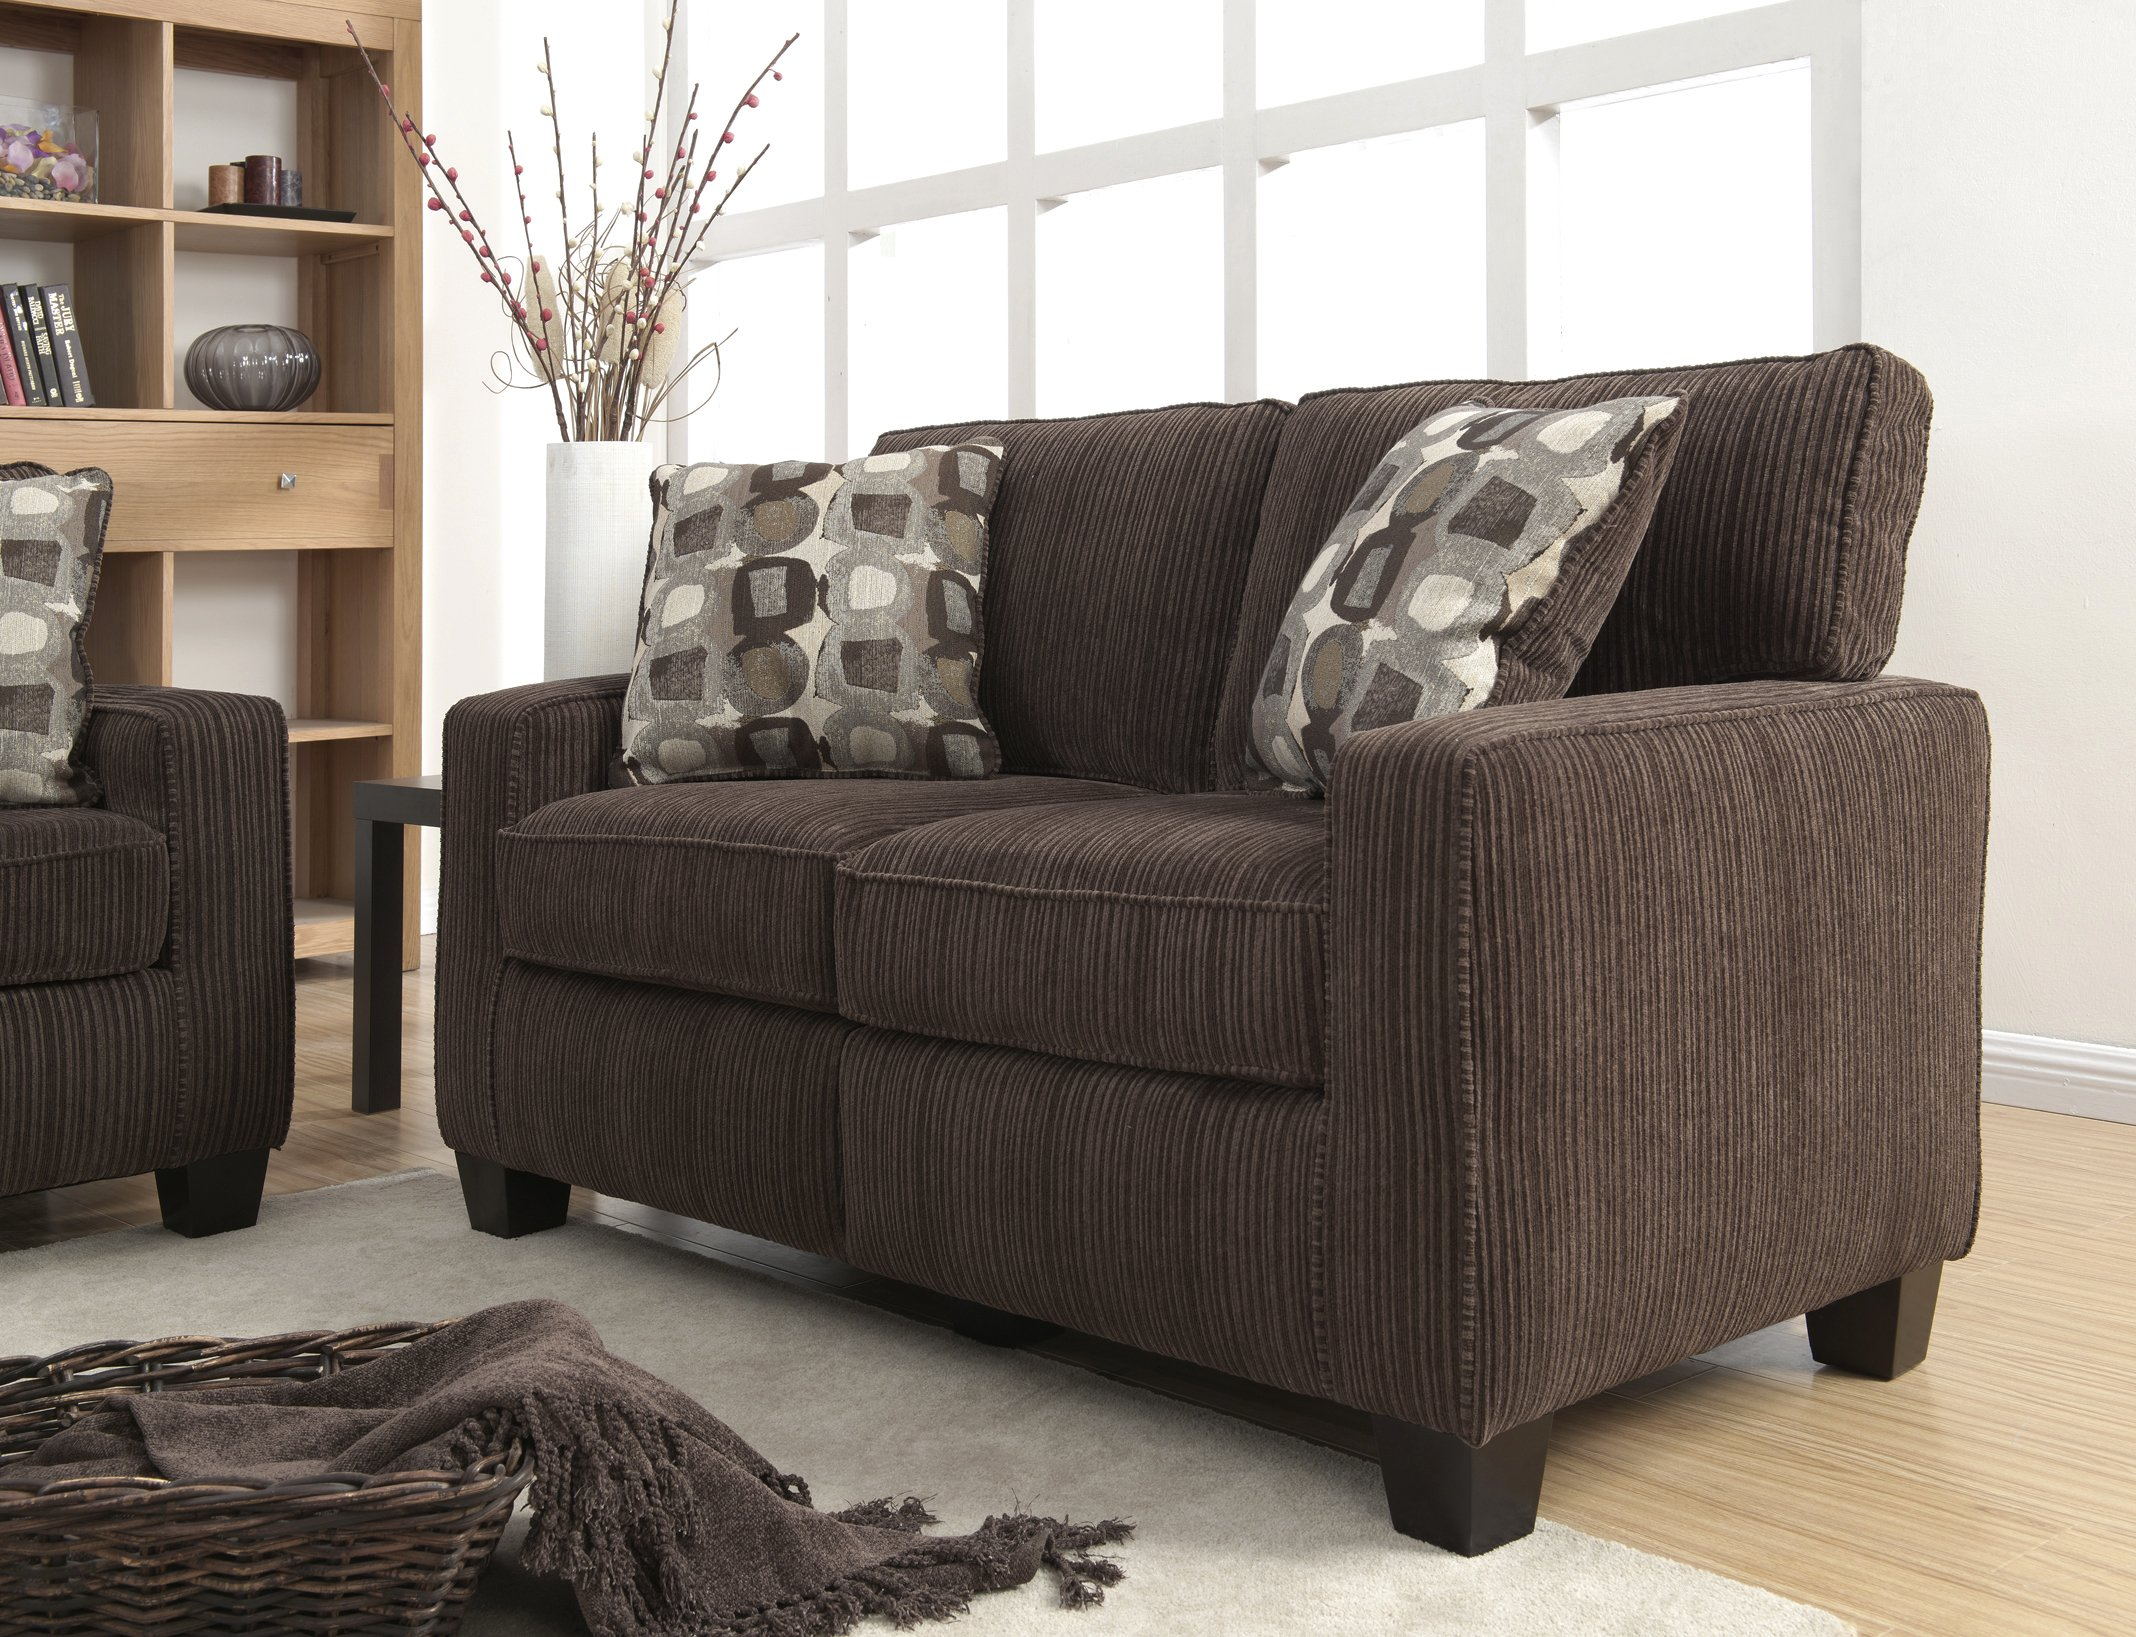 Serta RTA Palisades Collection 61'' Loveseat in Riverfront Brown